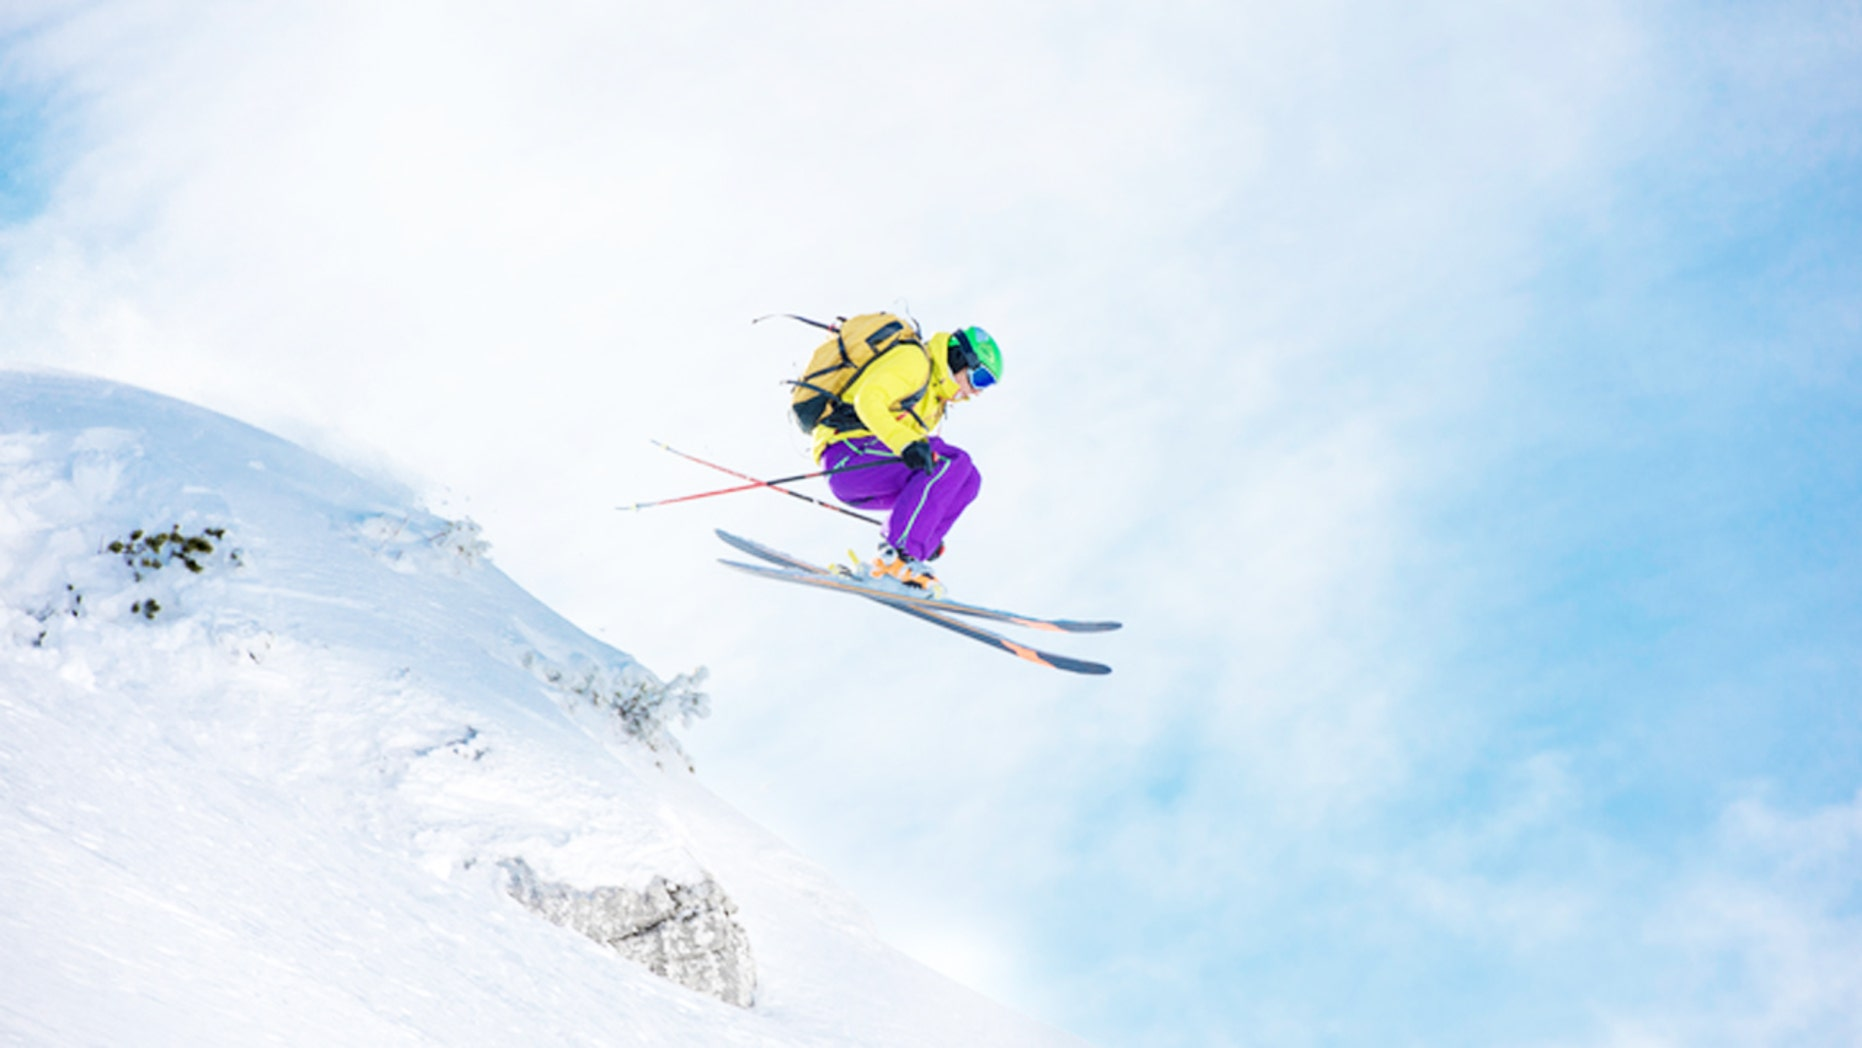 Shot of an extreme skier's jump in the air.